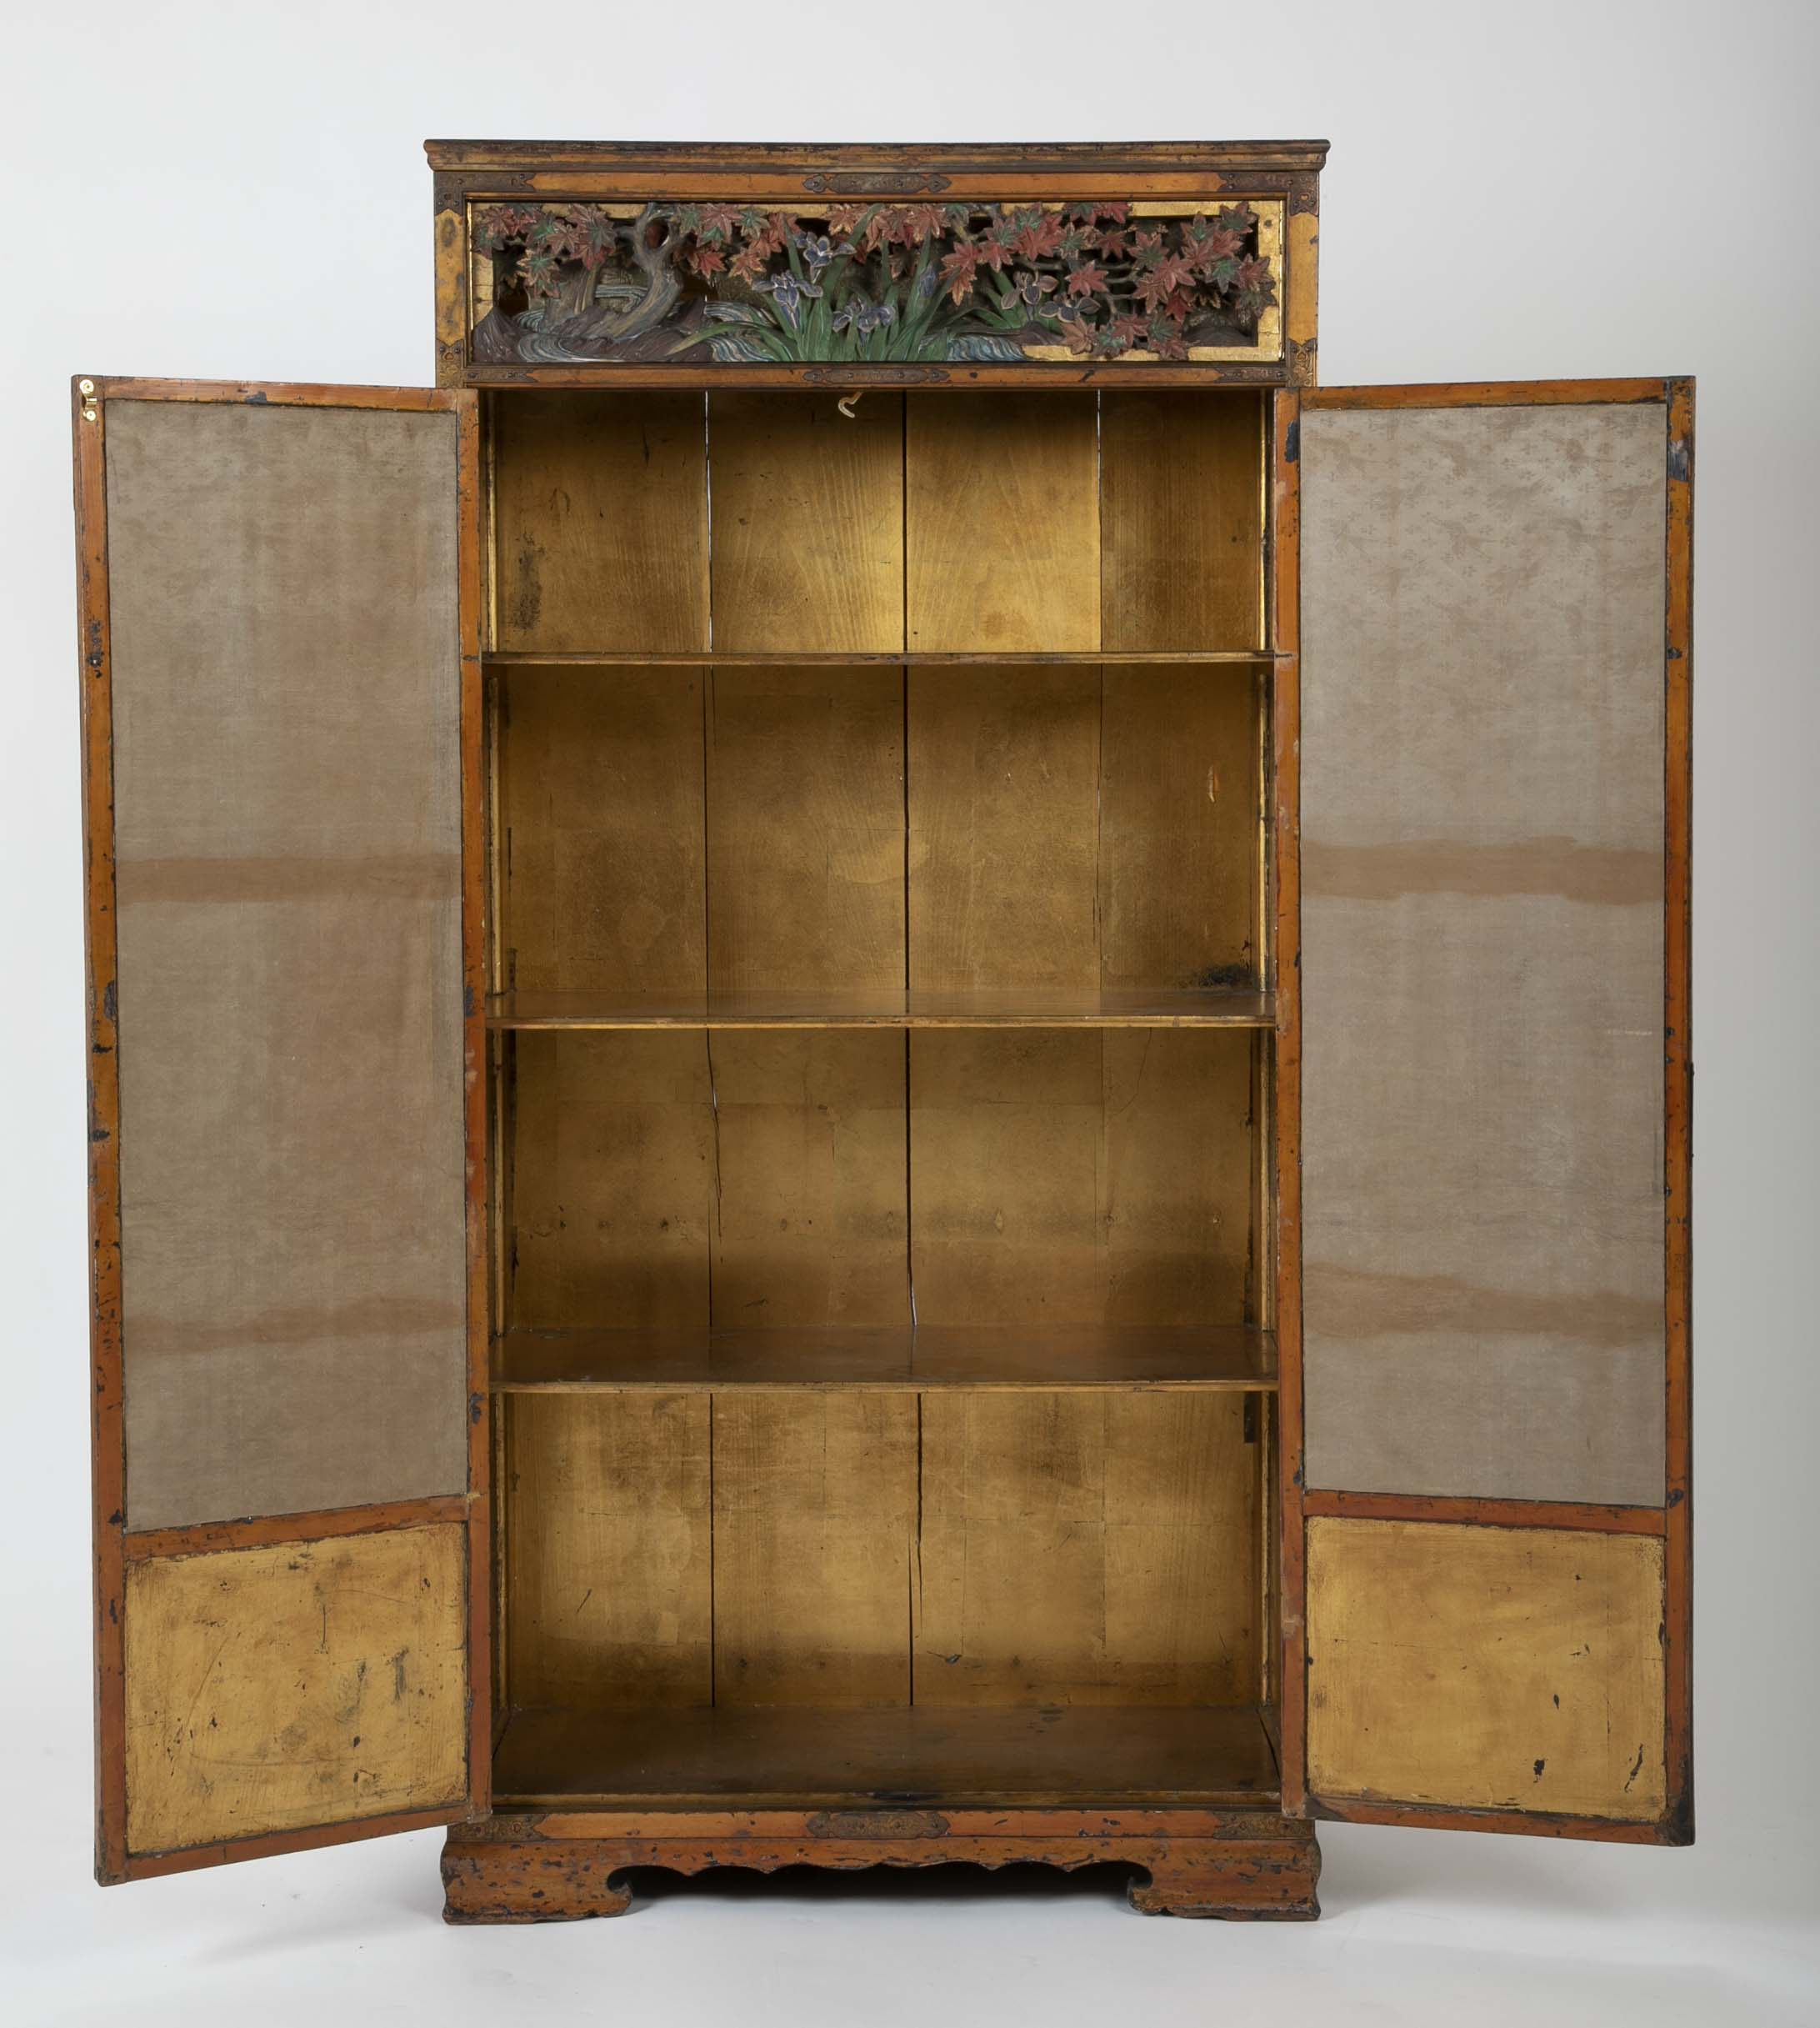 Gold Leaf Japanese Cabinet with Carved & Painted Panels of Flowers